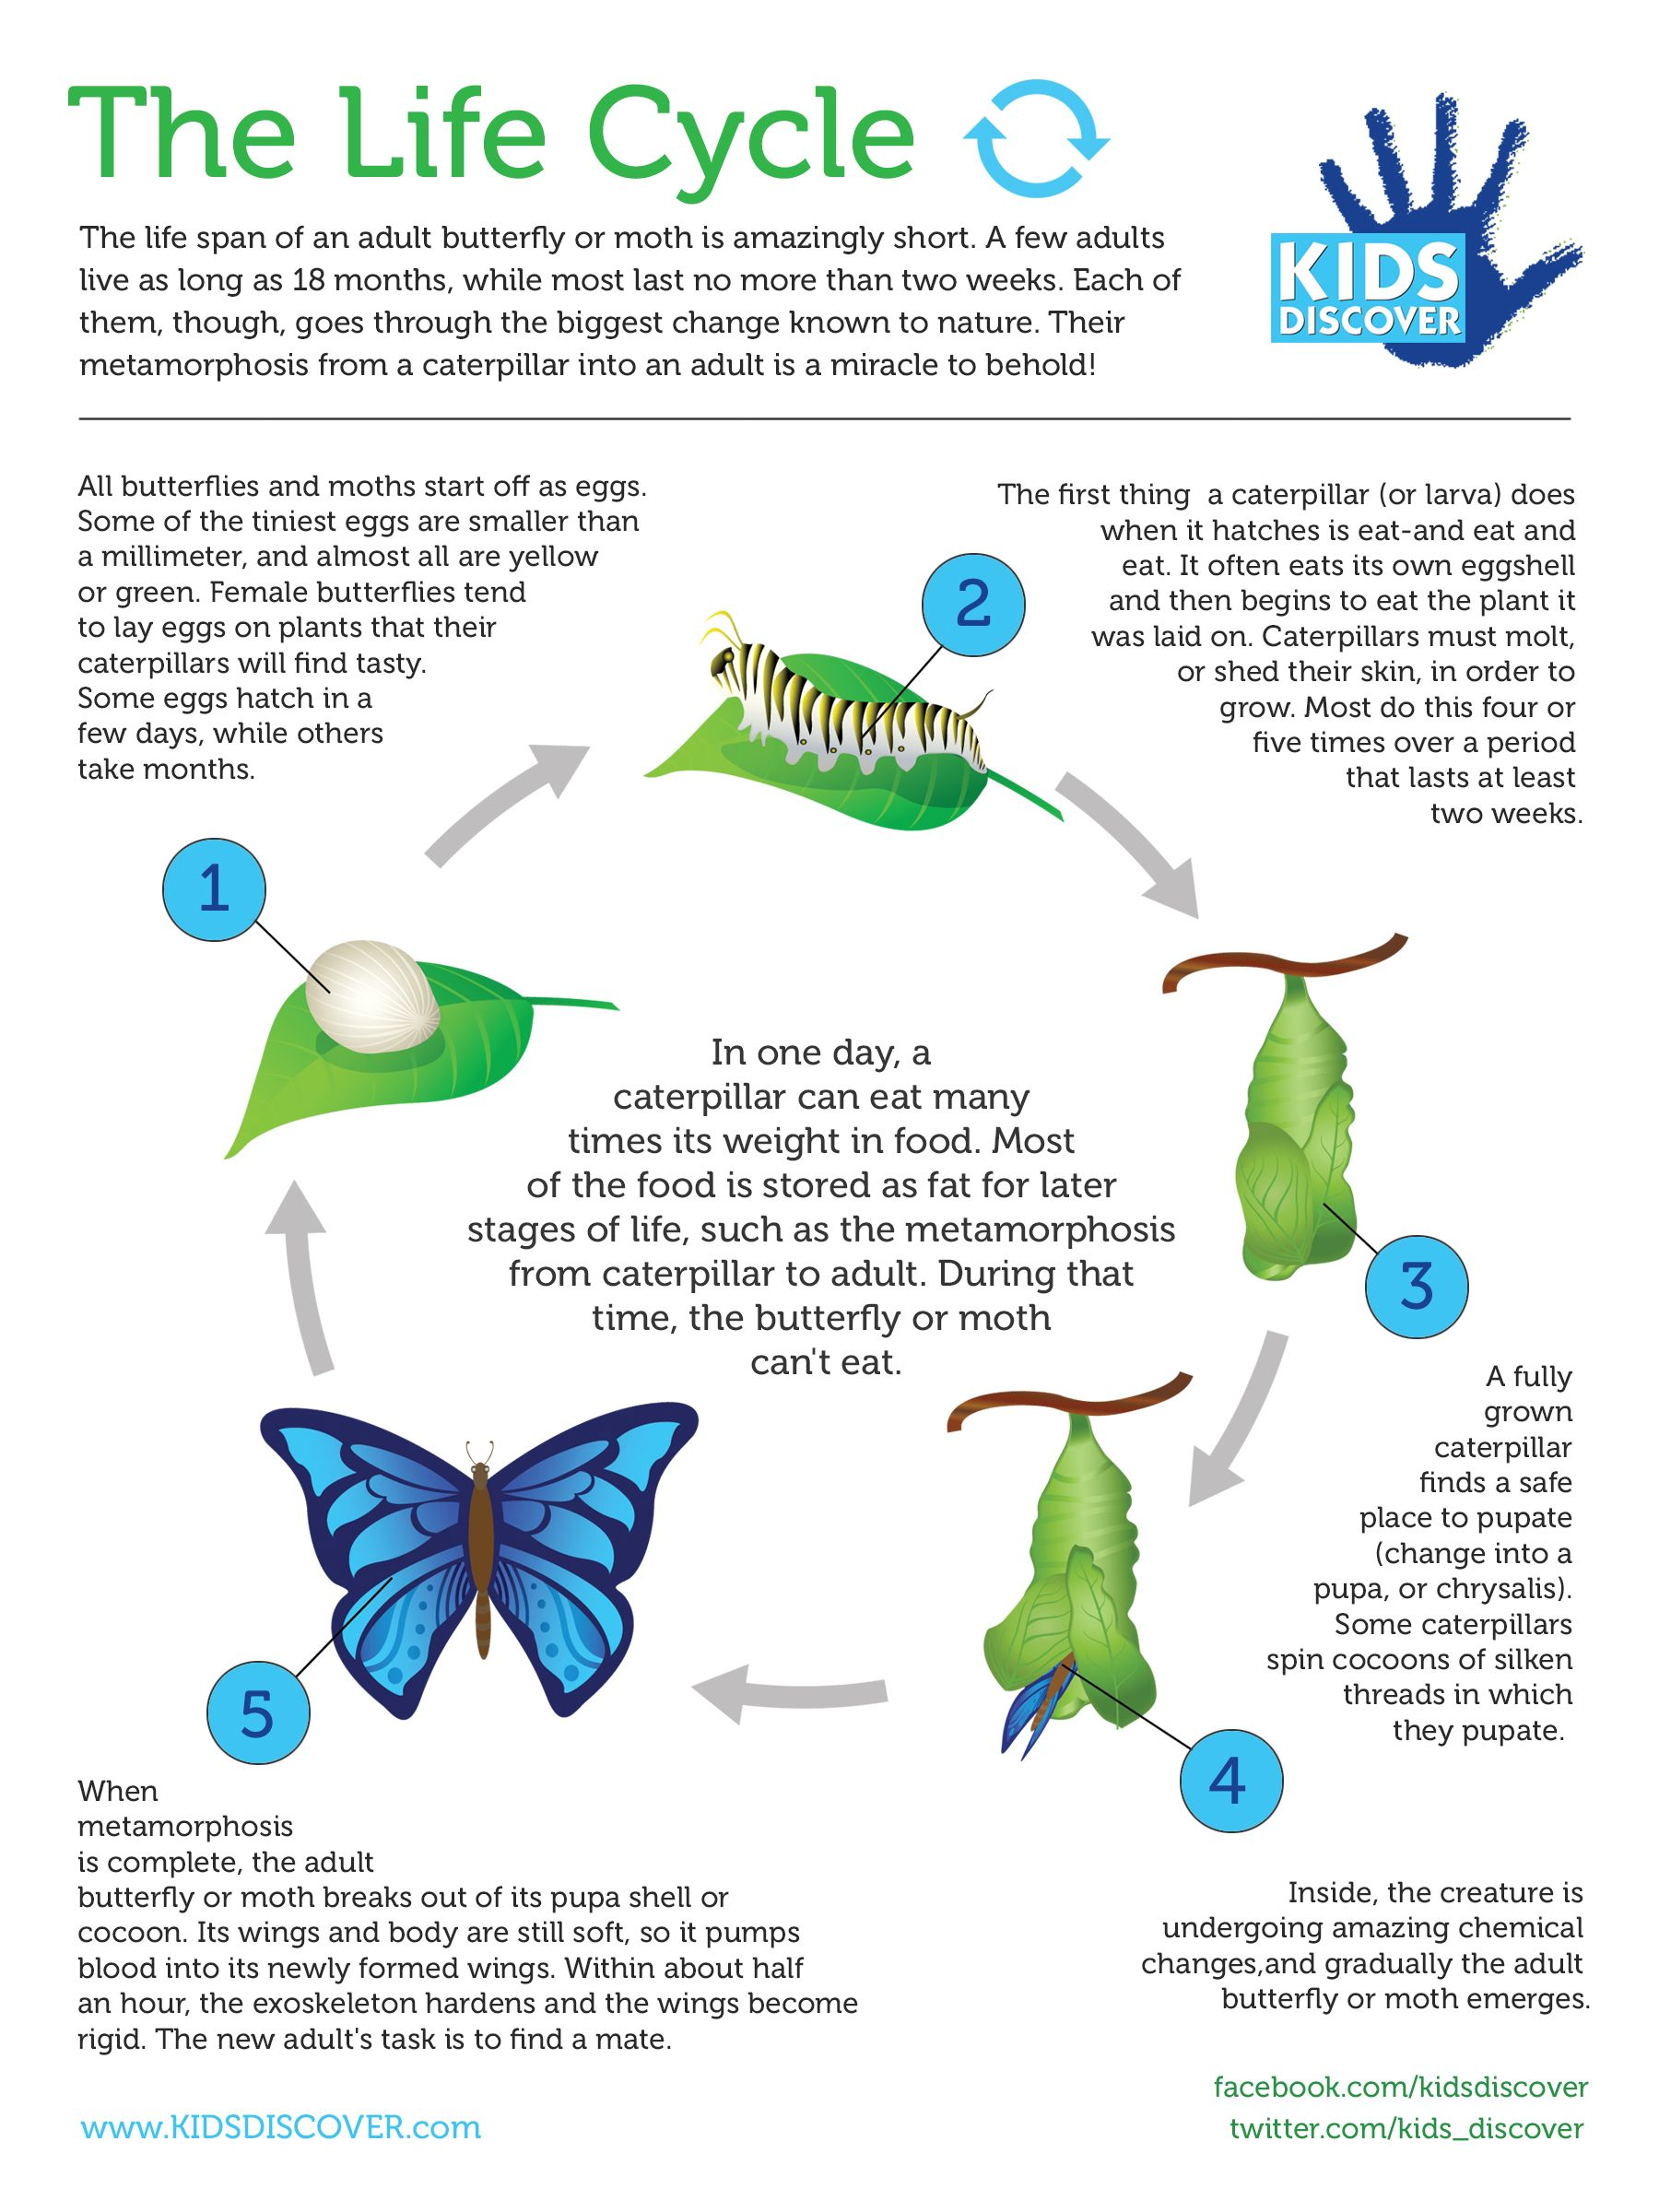 Metamorphosis Learn All About The Life Cycle In This Informative Infographic Perfect For Your